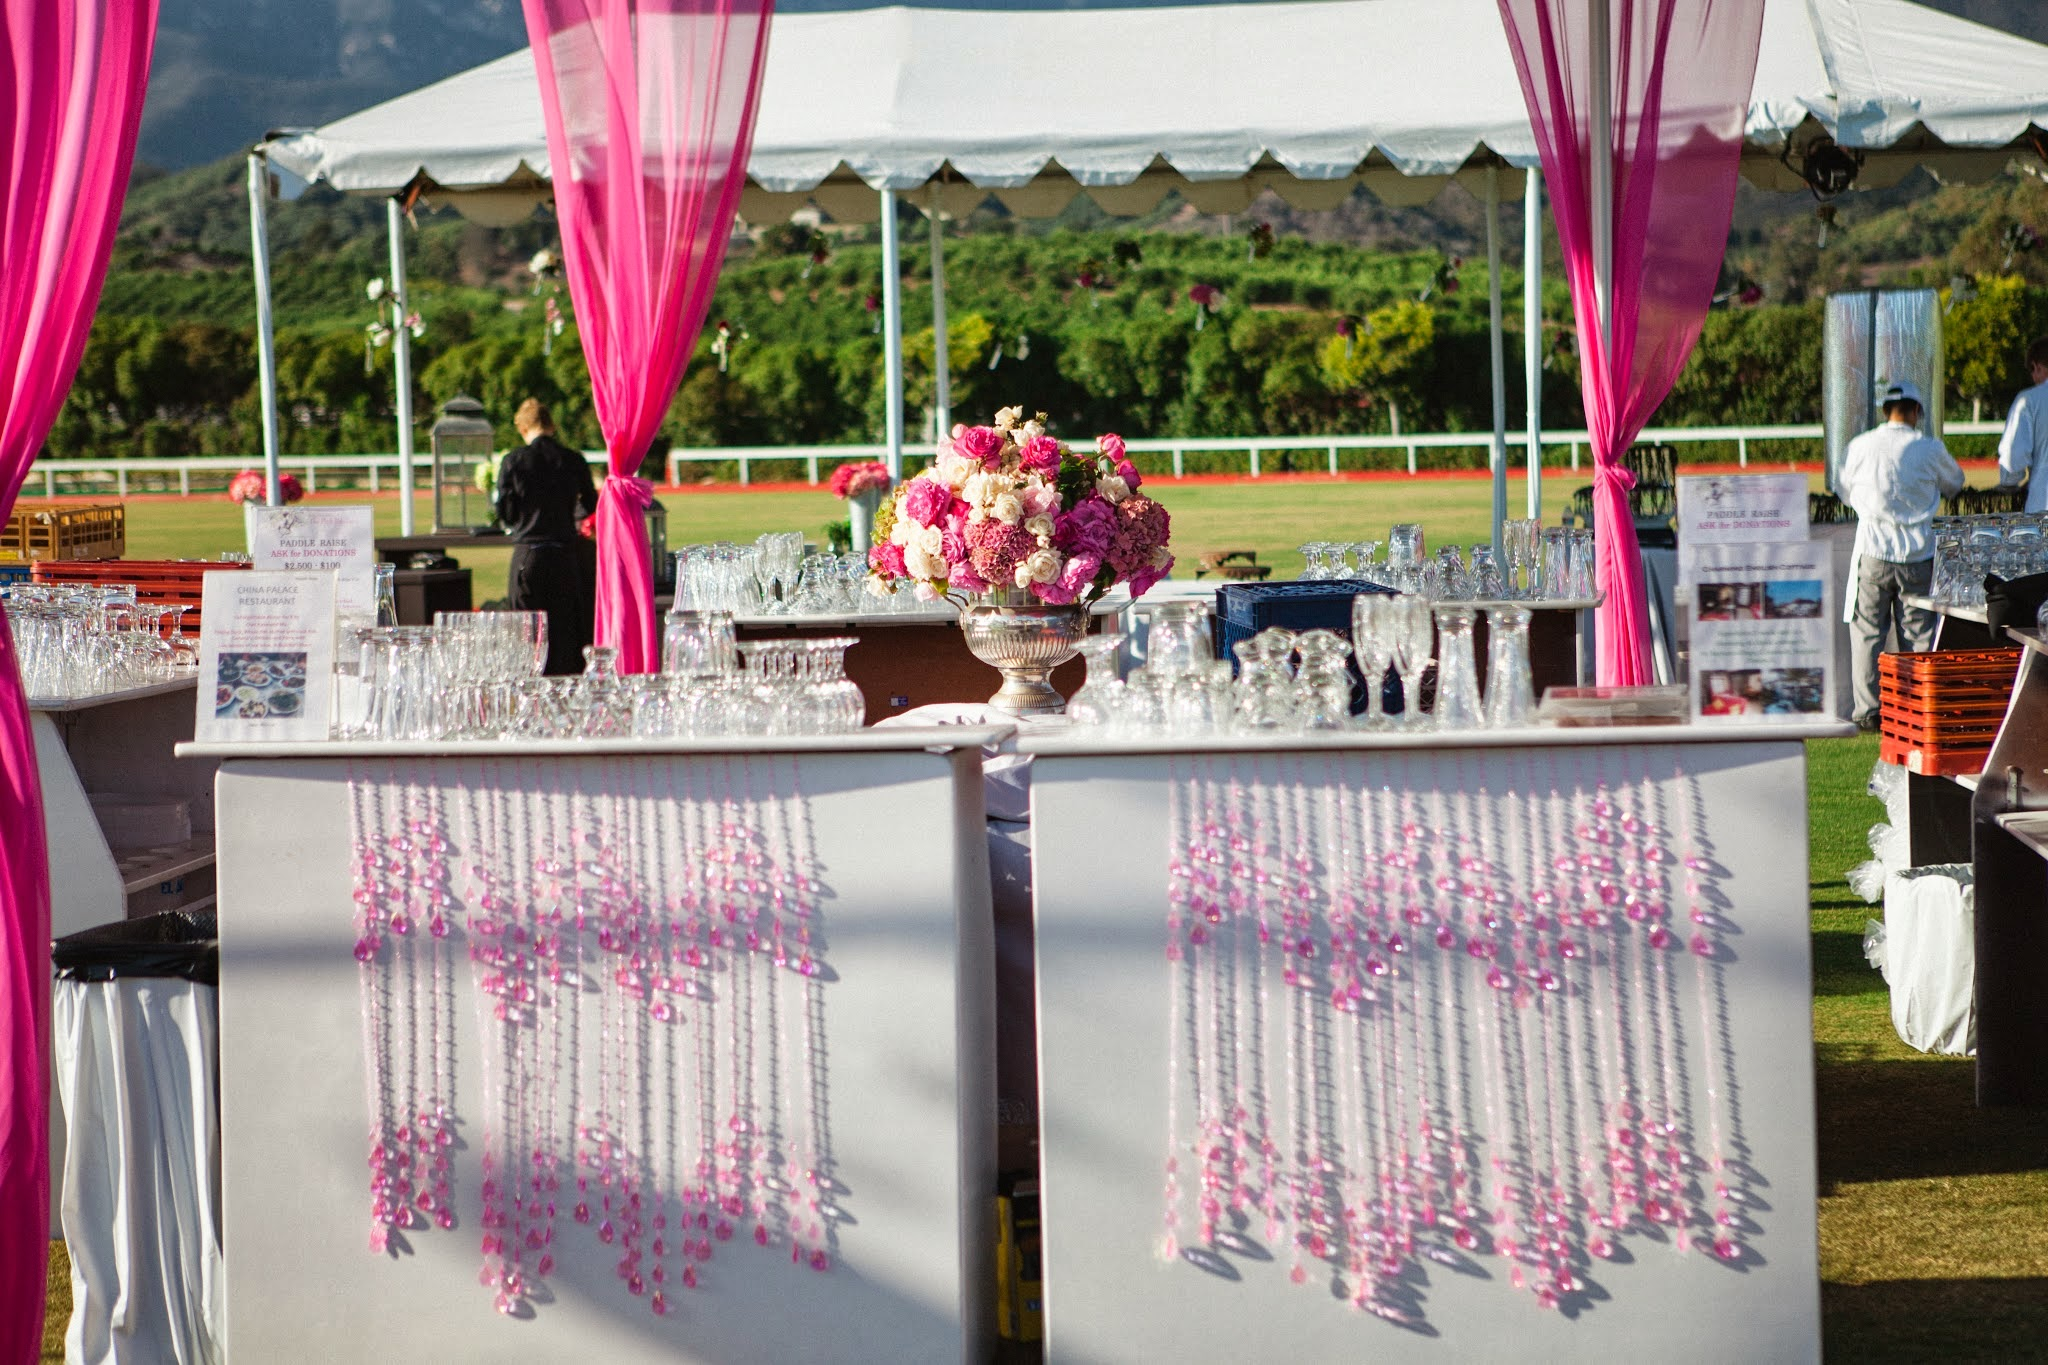 www.FeliciEvents | Pink Polo Party | Funraising Event | Felici Fundraiser | Polo Theme | Clarissa Koenig Photography | Pink Bar